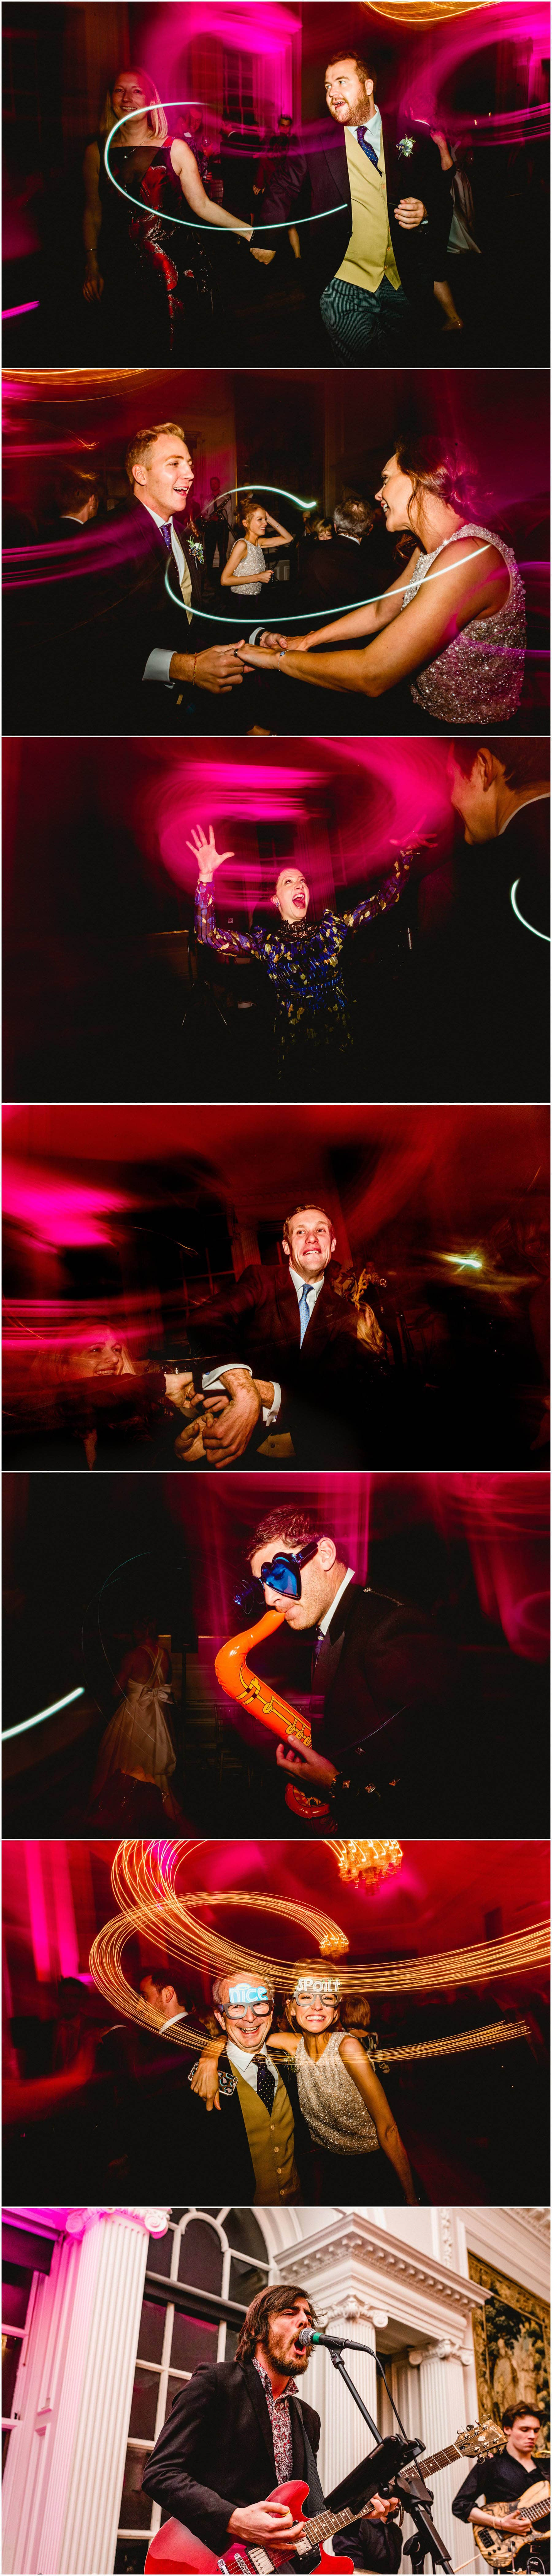 Photos of dancing at Hopetoun House during wedding reception with light trails and inflatables on dance floor.